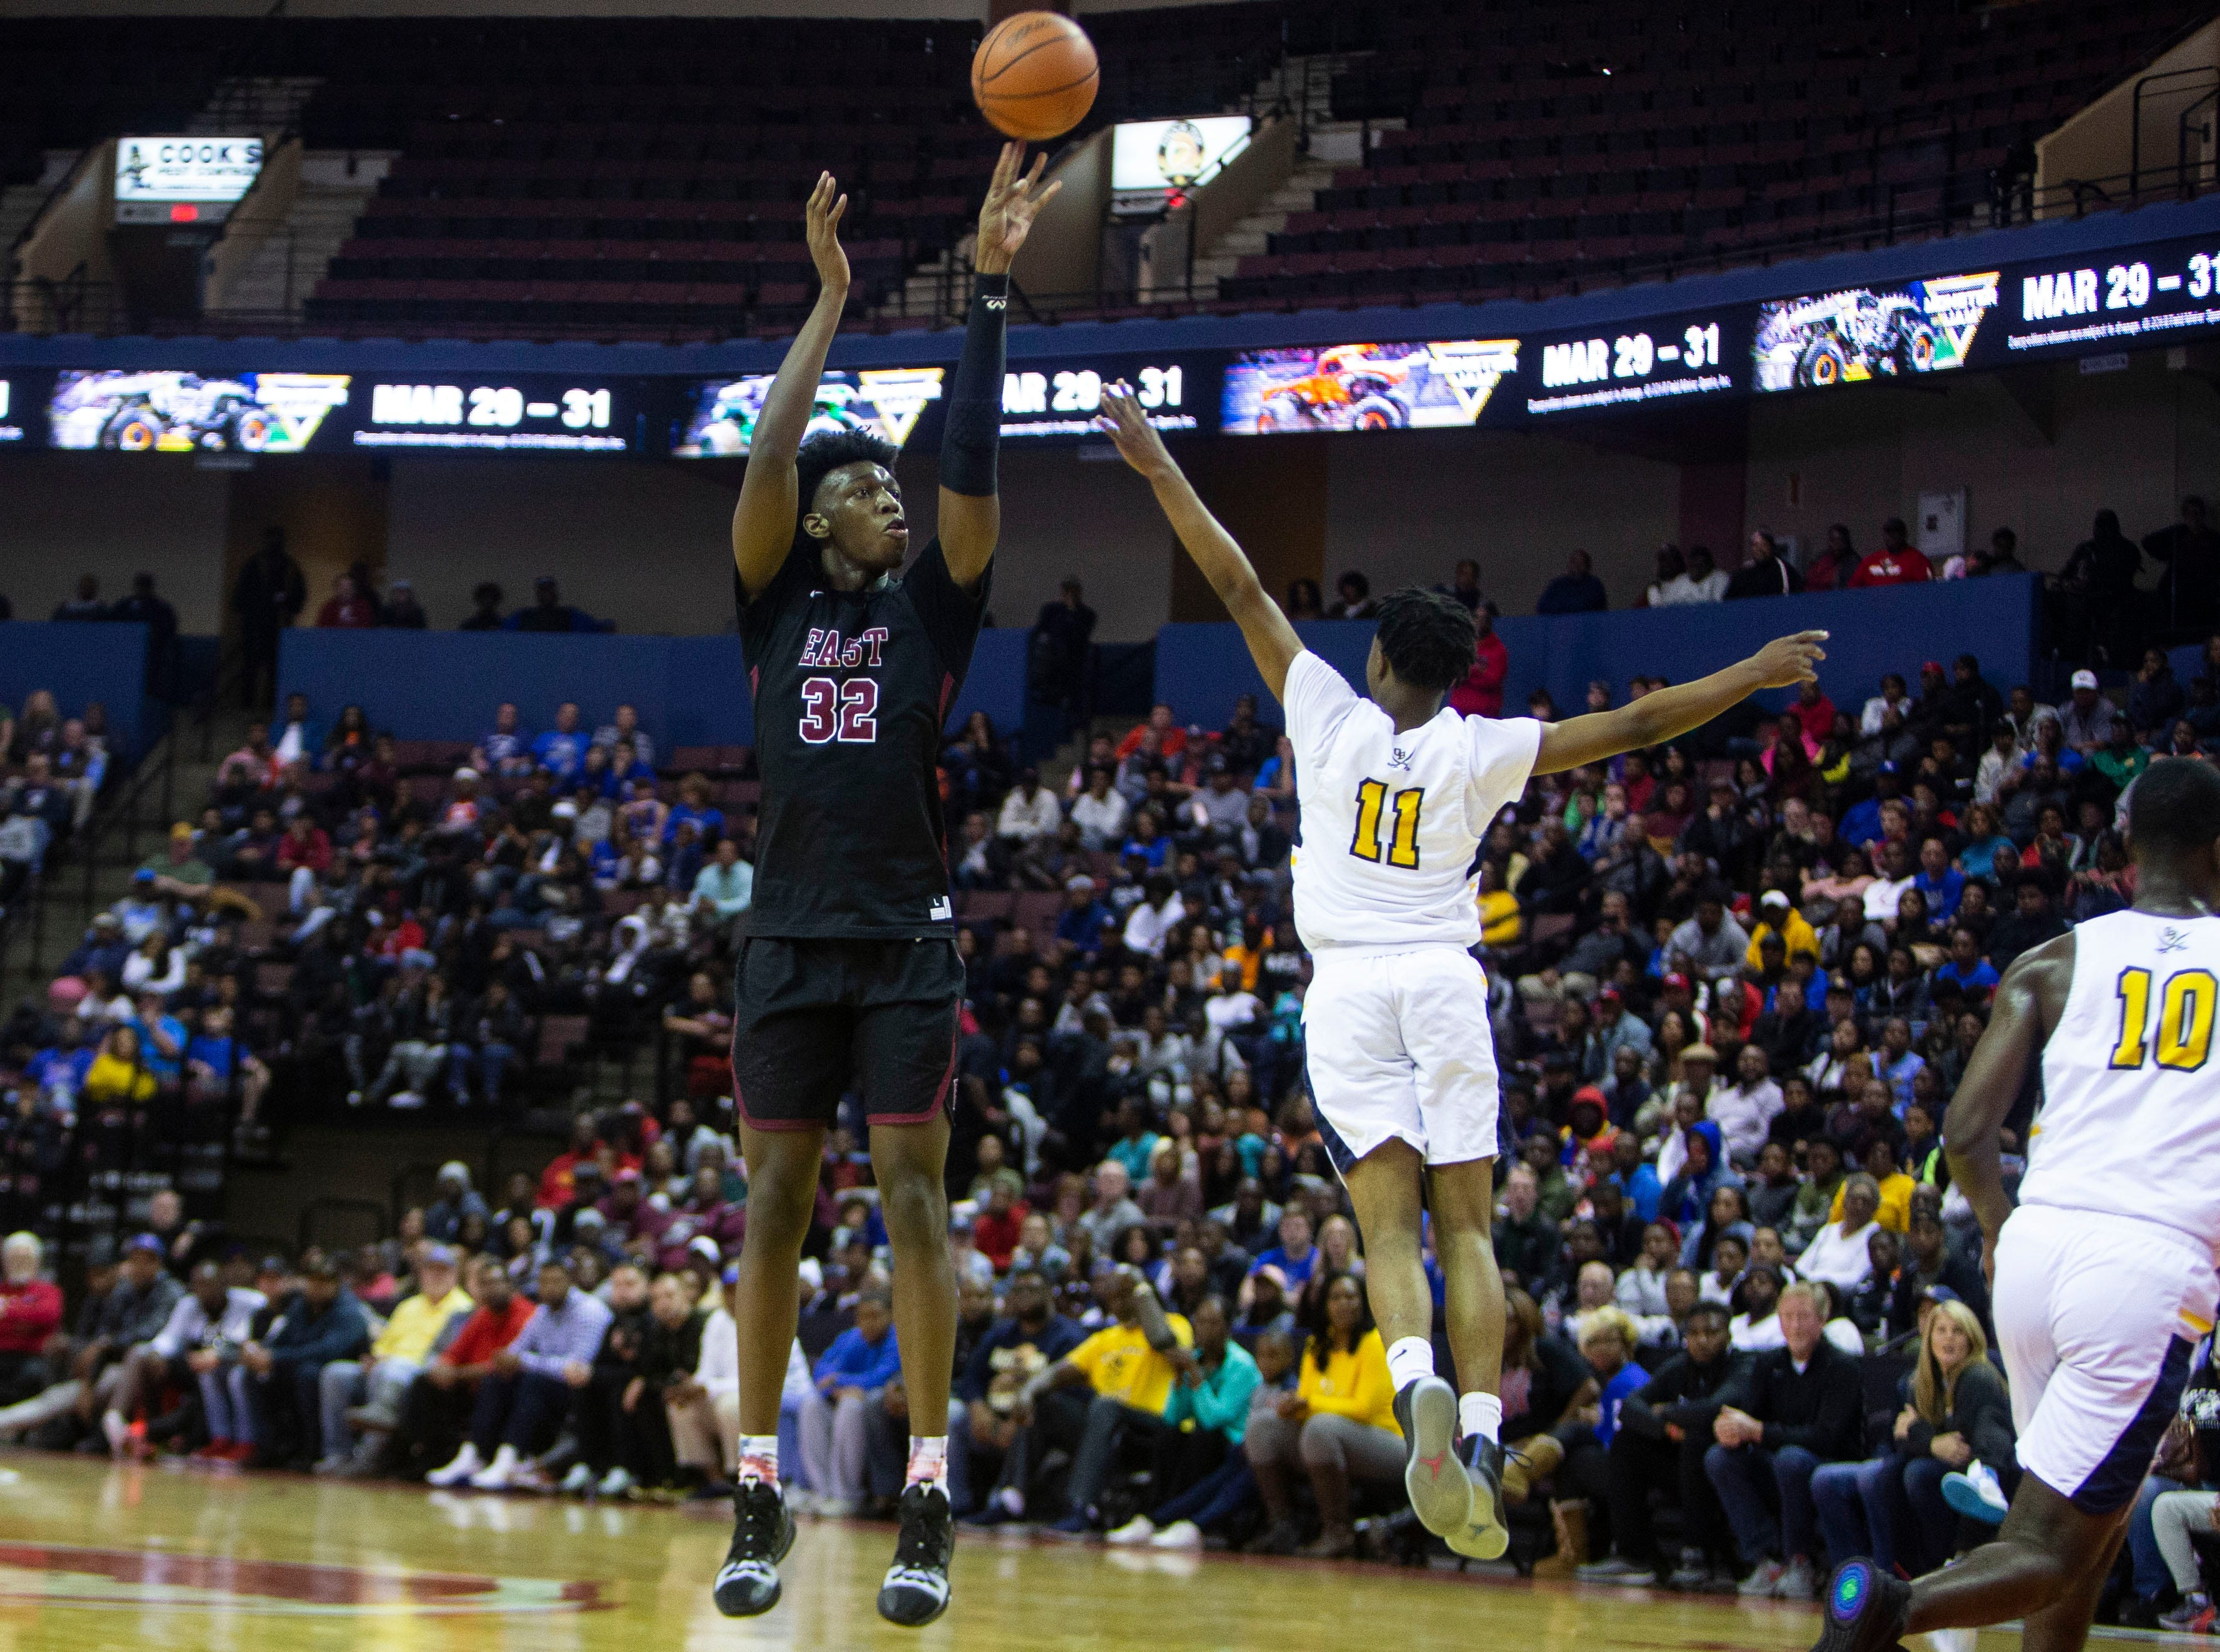 East Memphis Mustangs forward James Wiseman (32) shoots over Olive Branch Conquistadors guards Kyron Pleas (11) in the first half during a game Tuesday, Nov. 20, 2018 at the Landers Center in Southaven, Miss.